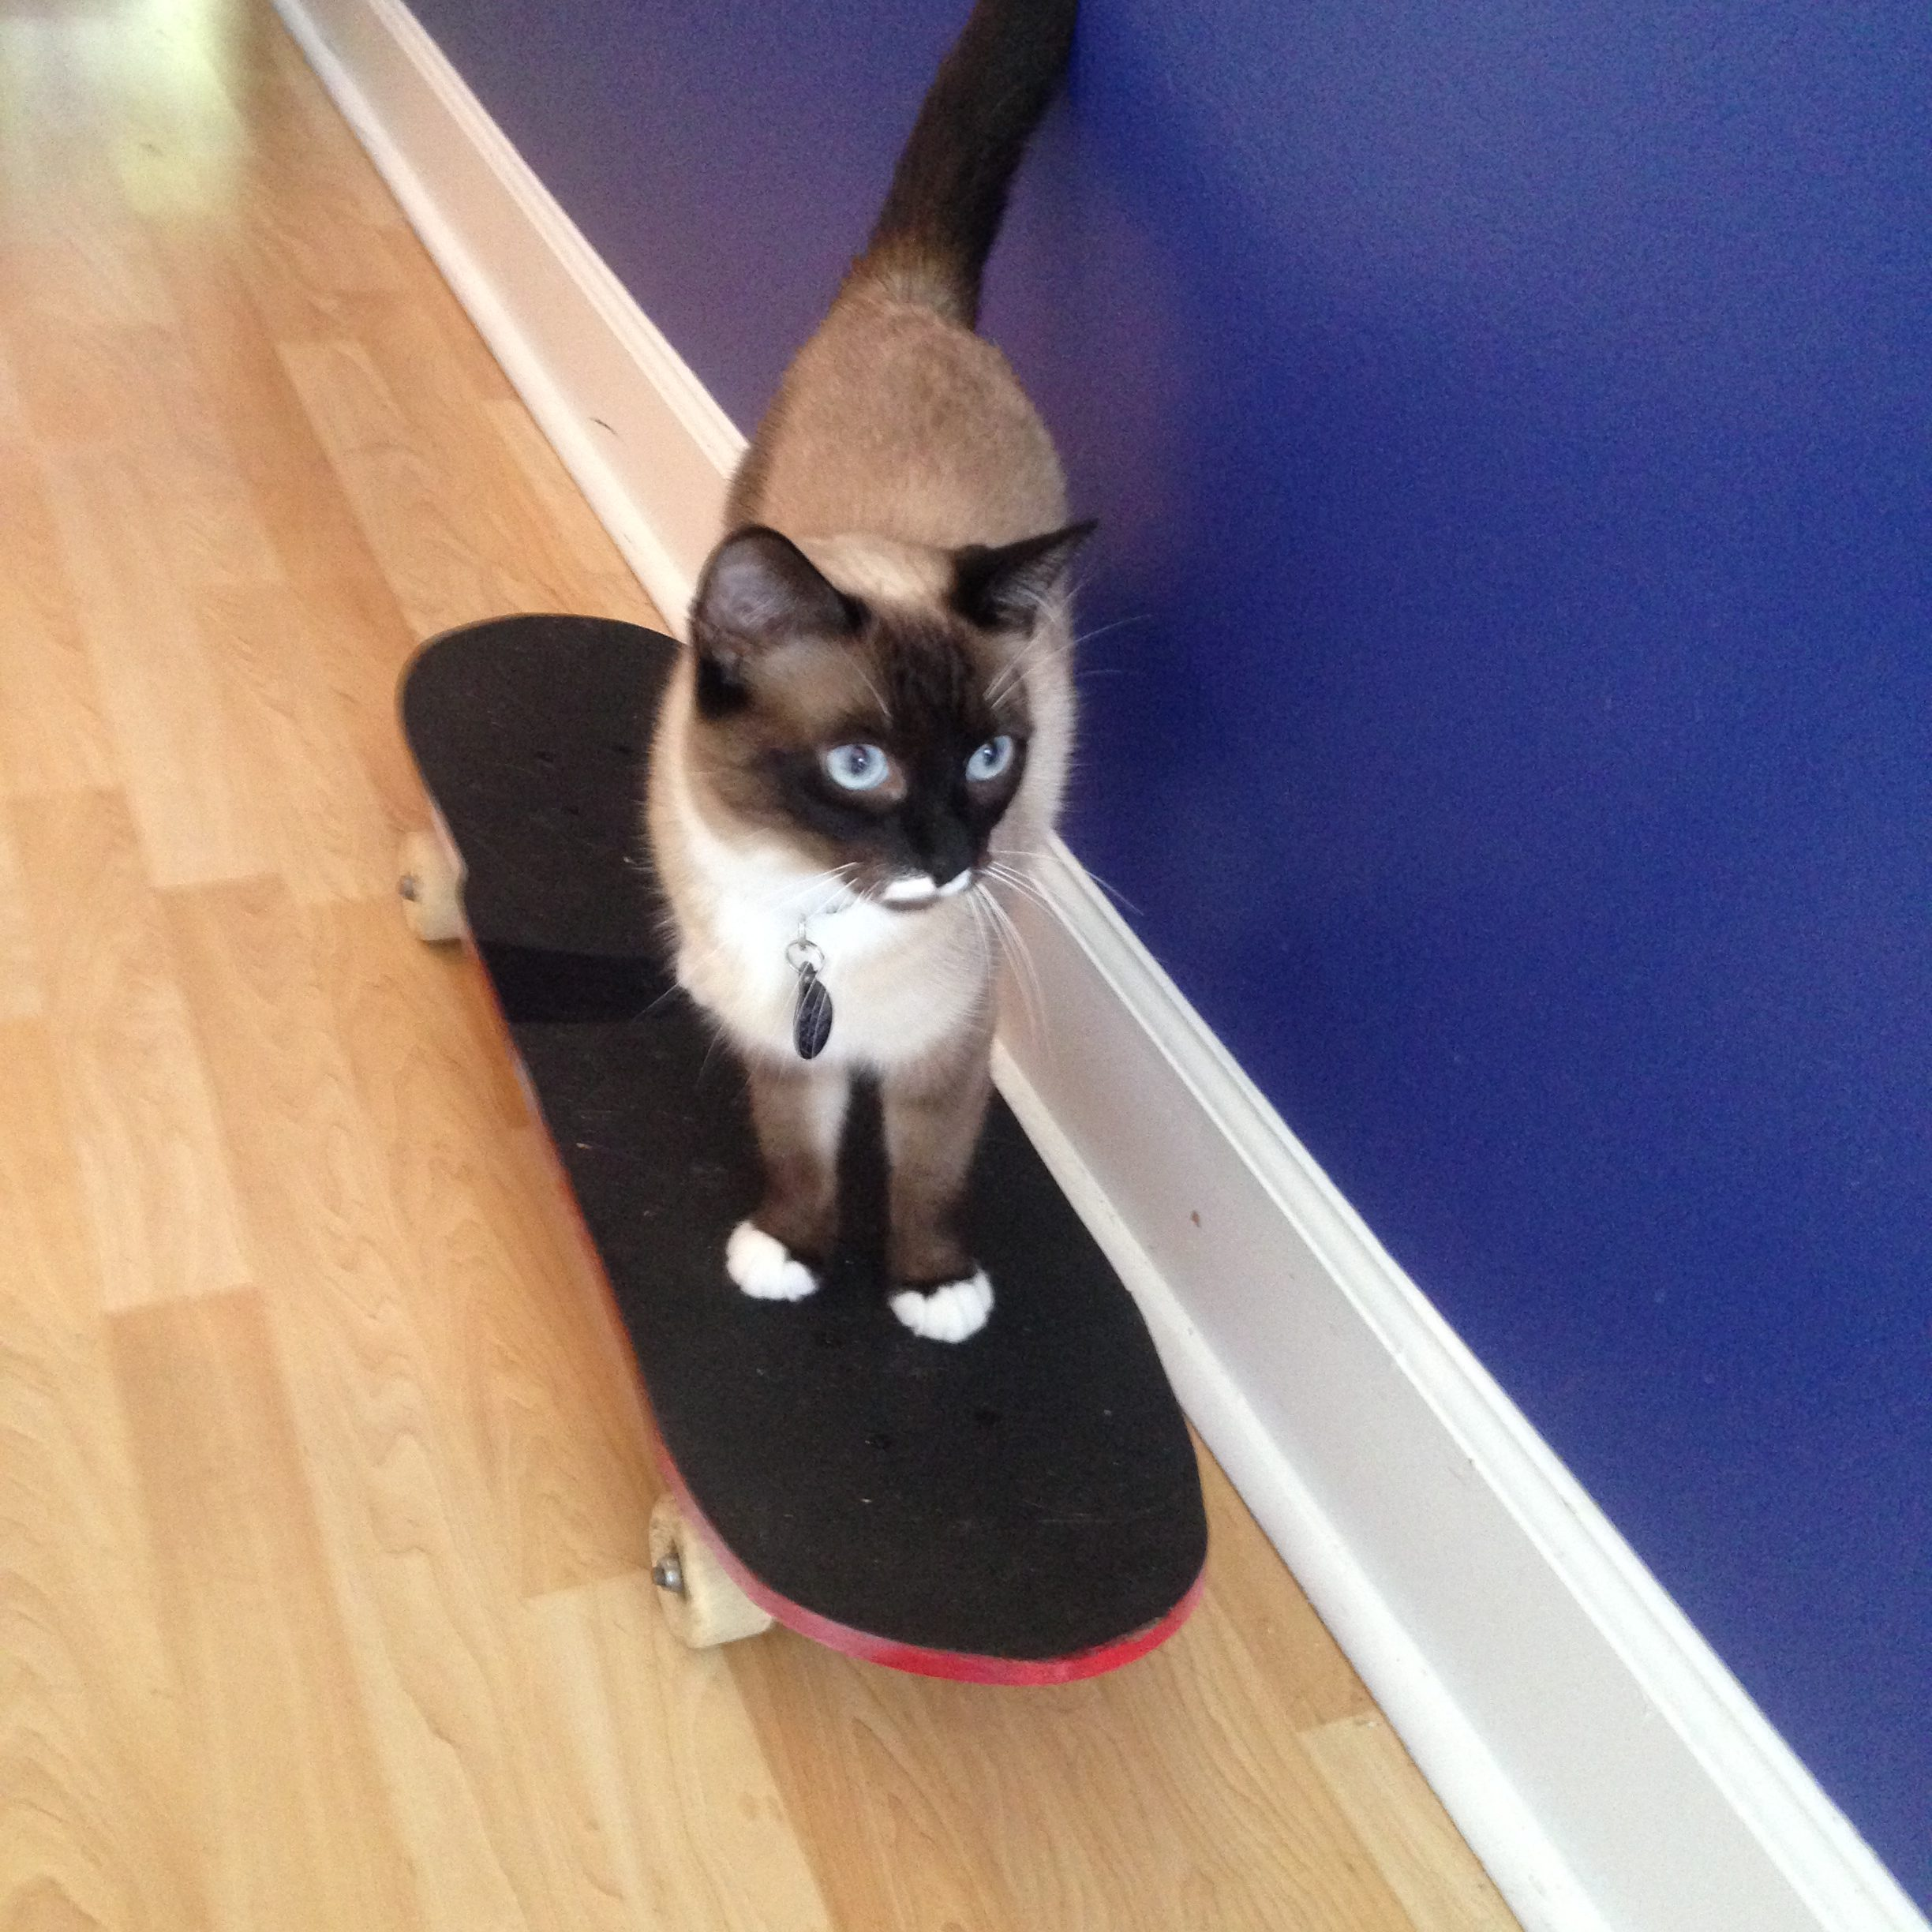 Willow cruisin' on her skateboard. Ingrid has taught many cats to skate!